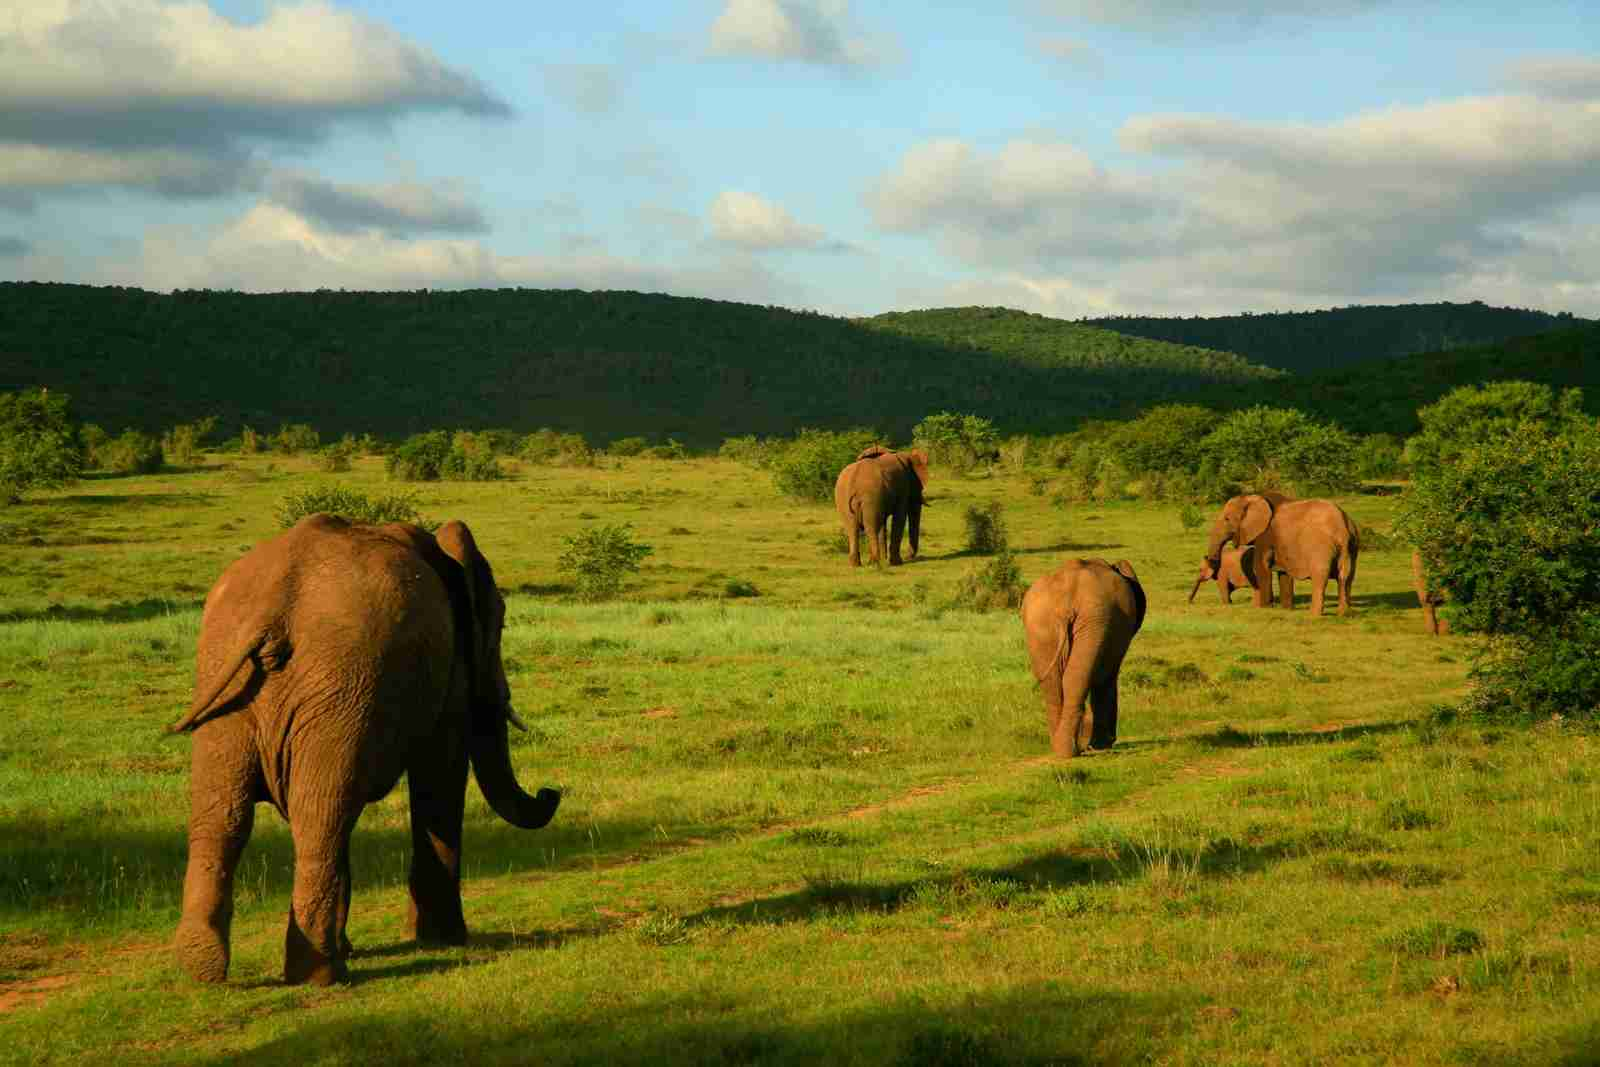 Addo Elephant National Park in Eastern Cape, South Africa. (Photo by Jeremy Jowell/Majority World/Universal Images Group/Getty Images)